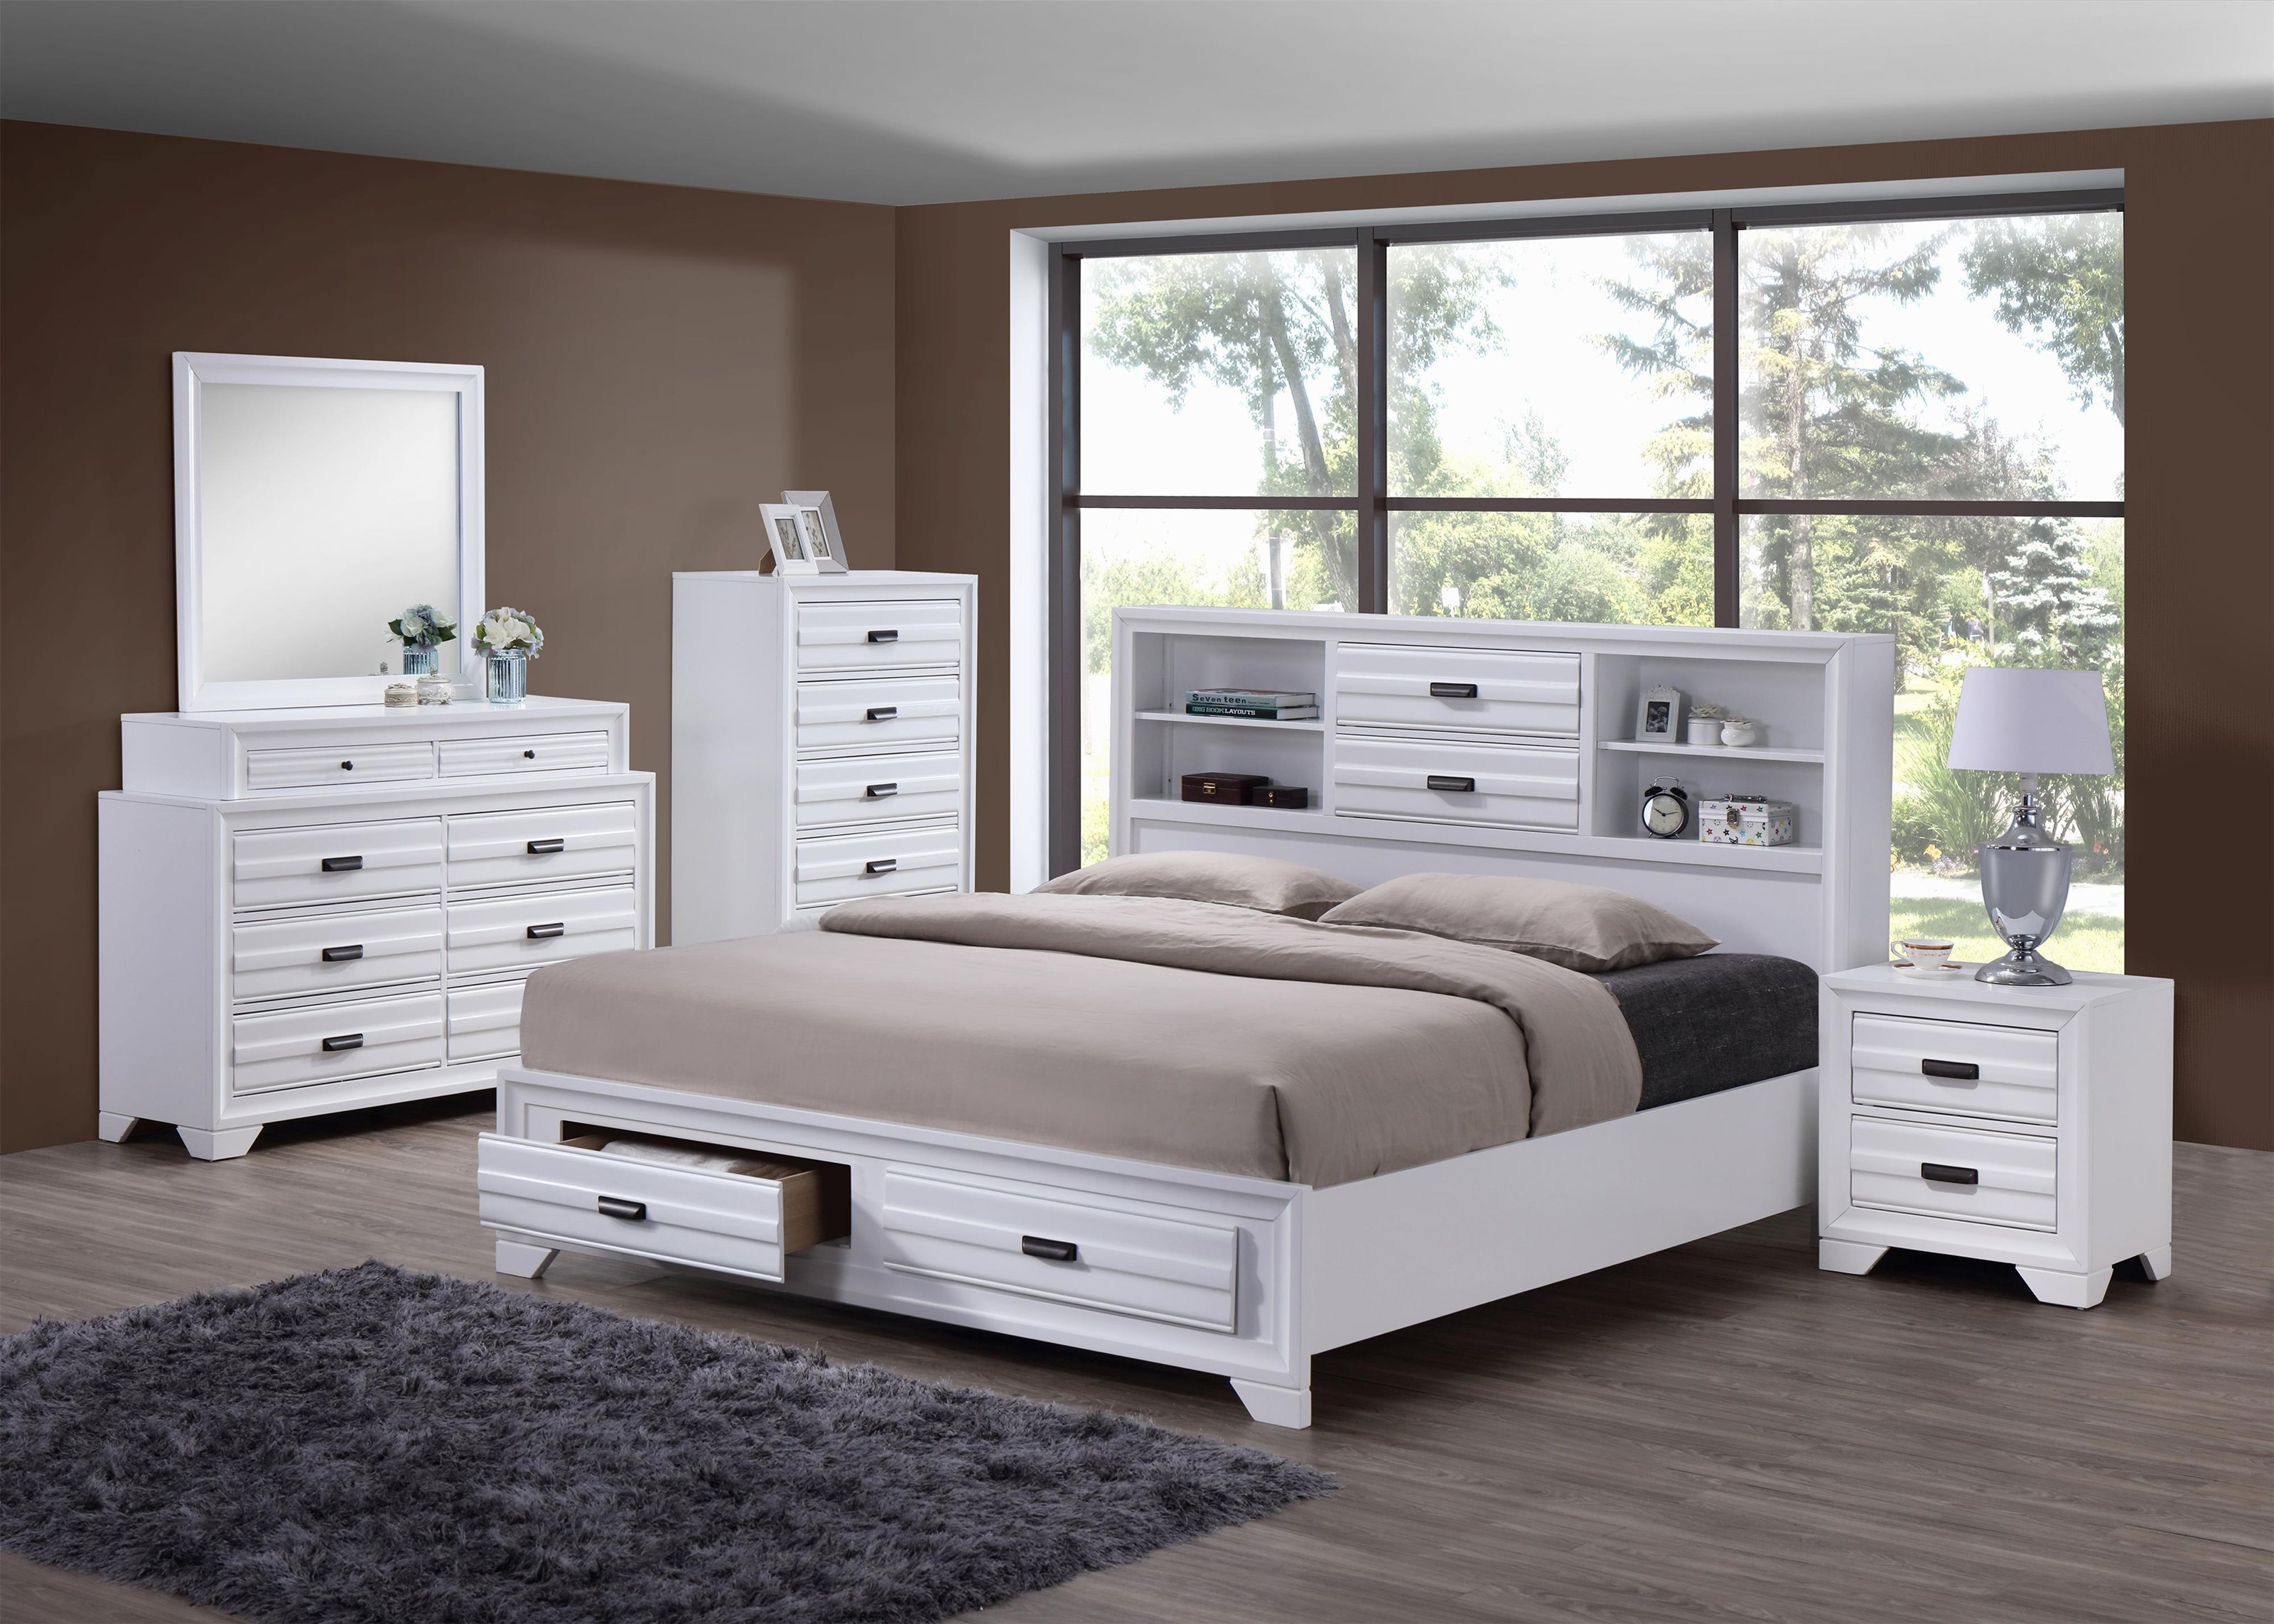 5236W Queen Bedroom Group by Lifestyle at Beck's Furniture